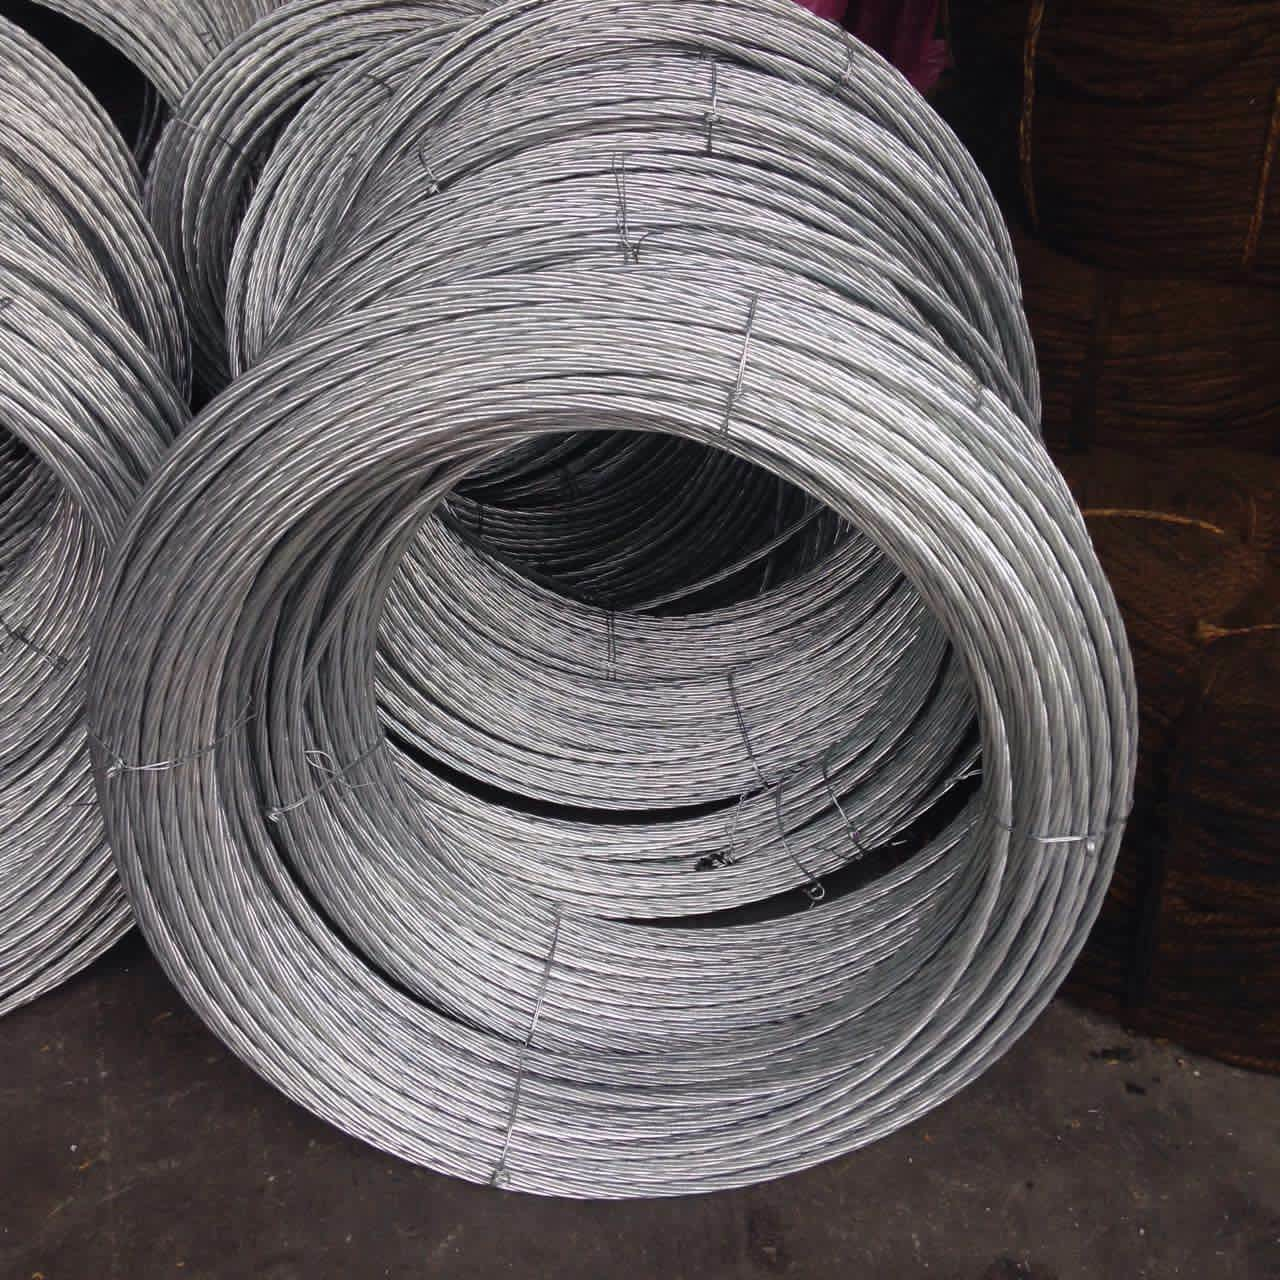 ASTM A 475 BS 183 Galvanized Steel Wire Strand Earth Wire For Ground ...